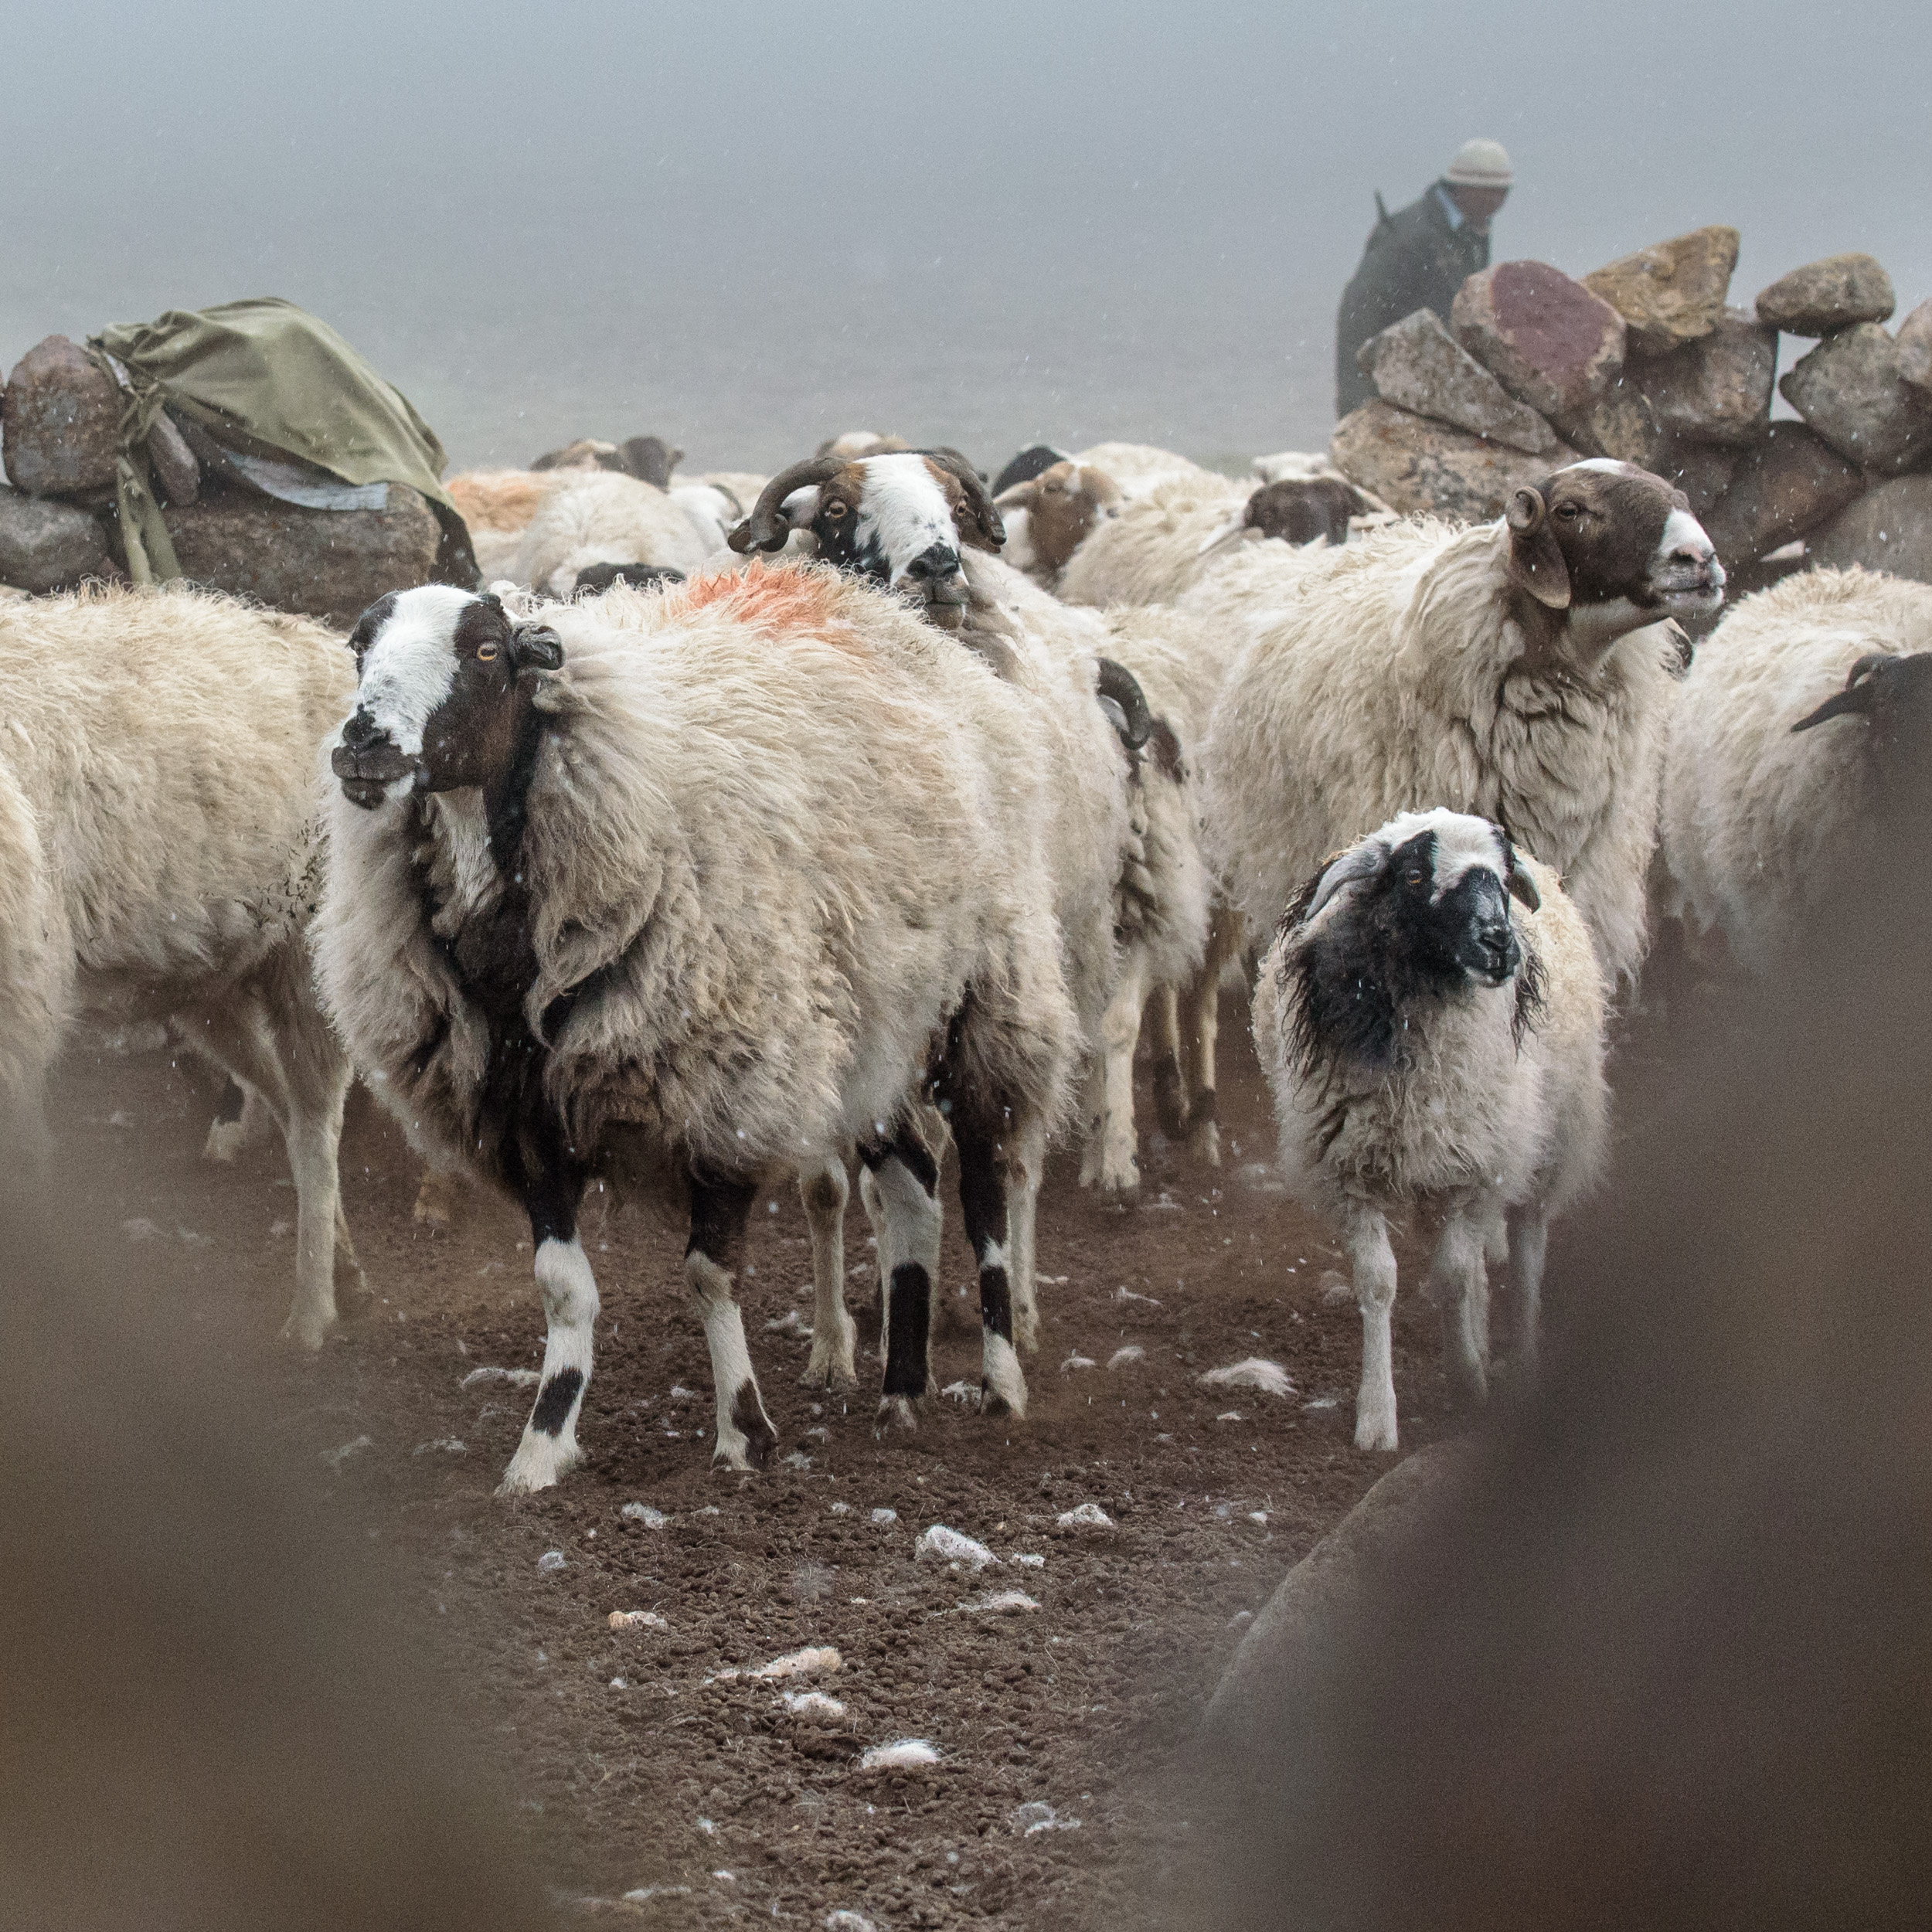 Check out the coat on that sheep!